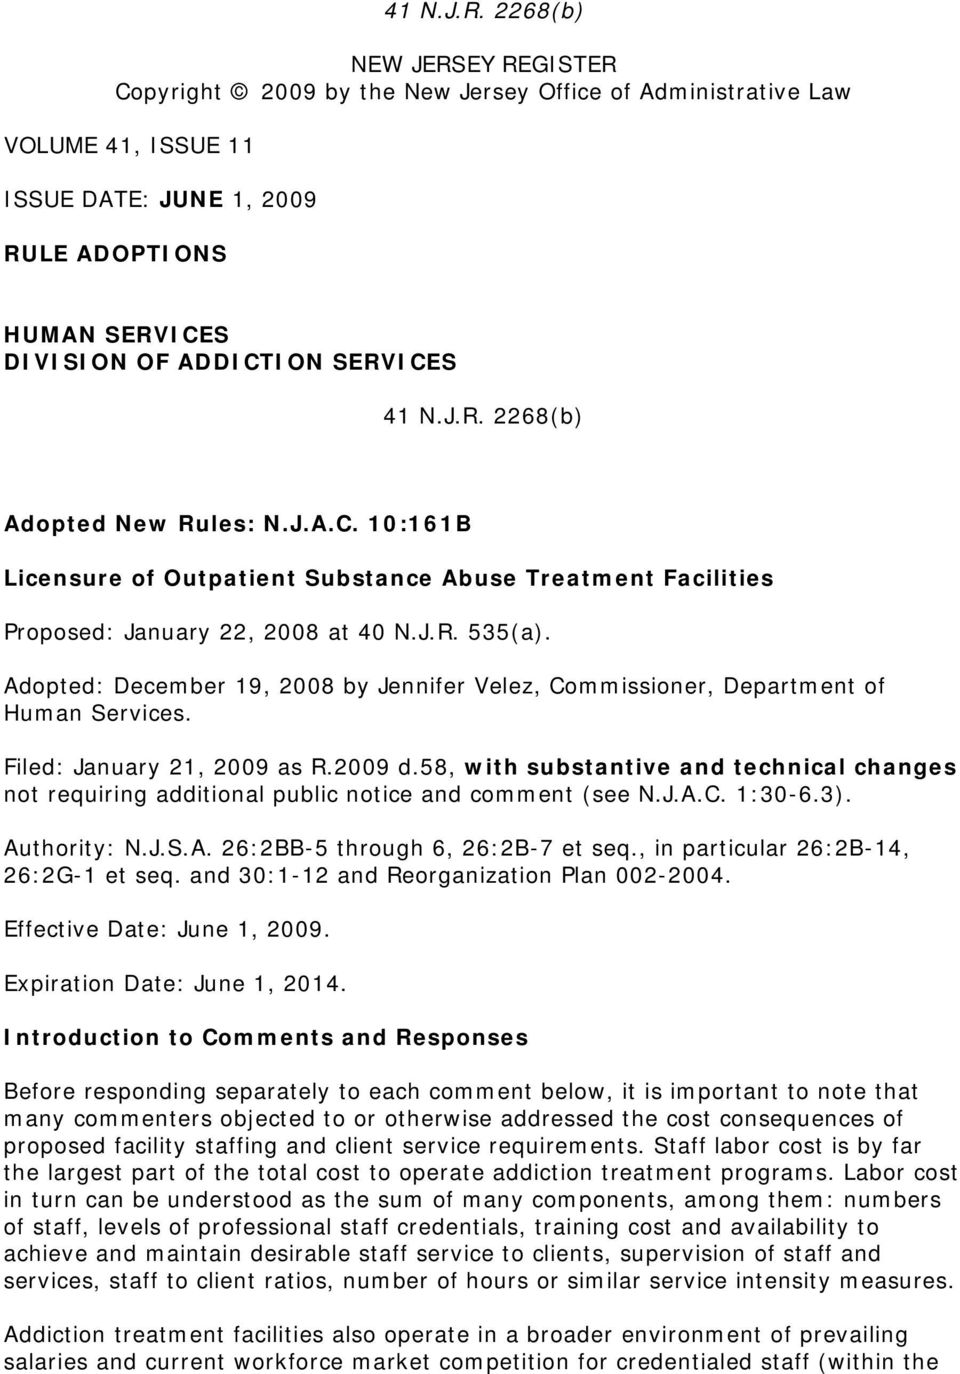 2268(b) Adopted New Rules: N.J.A.C. 10:161B Licensure of Outpatient Substance Abuse Treatment Facilities Proposed: January 22, 2008 at 40 N.J.R. 535(a).